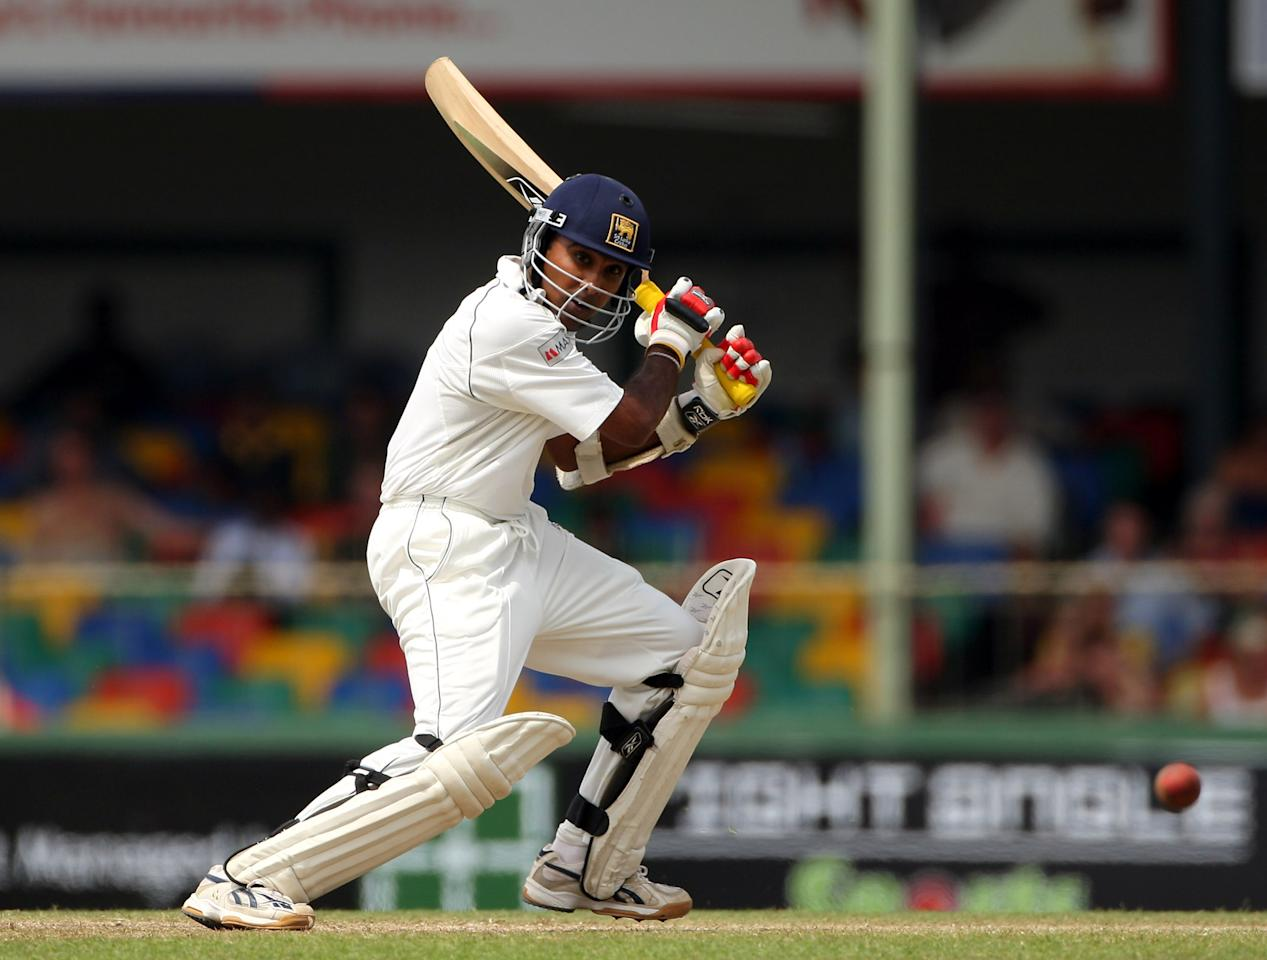 COLOMBO, SRI LANKA - DECEMBER 11:  Mahela Jayawardene of Sri Lanka cuts a ball to the boundary during day three of the second Test match between Sri Lanka and England at Sinhalese Sports Ground on December 11, 2007 in Colombo, Sri Lanka.  (Photo by Stu Forster/Getty Images)